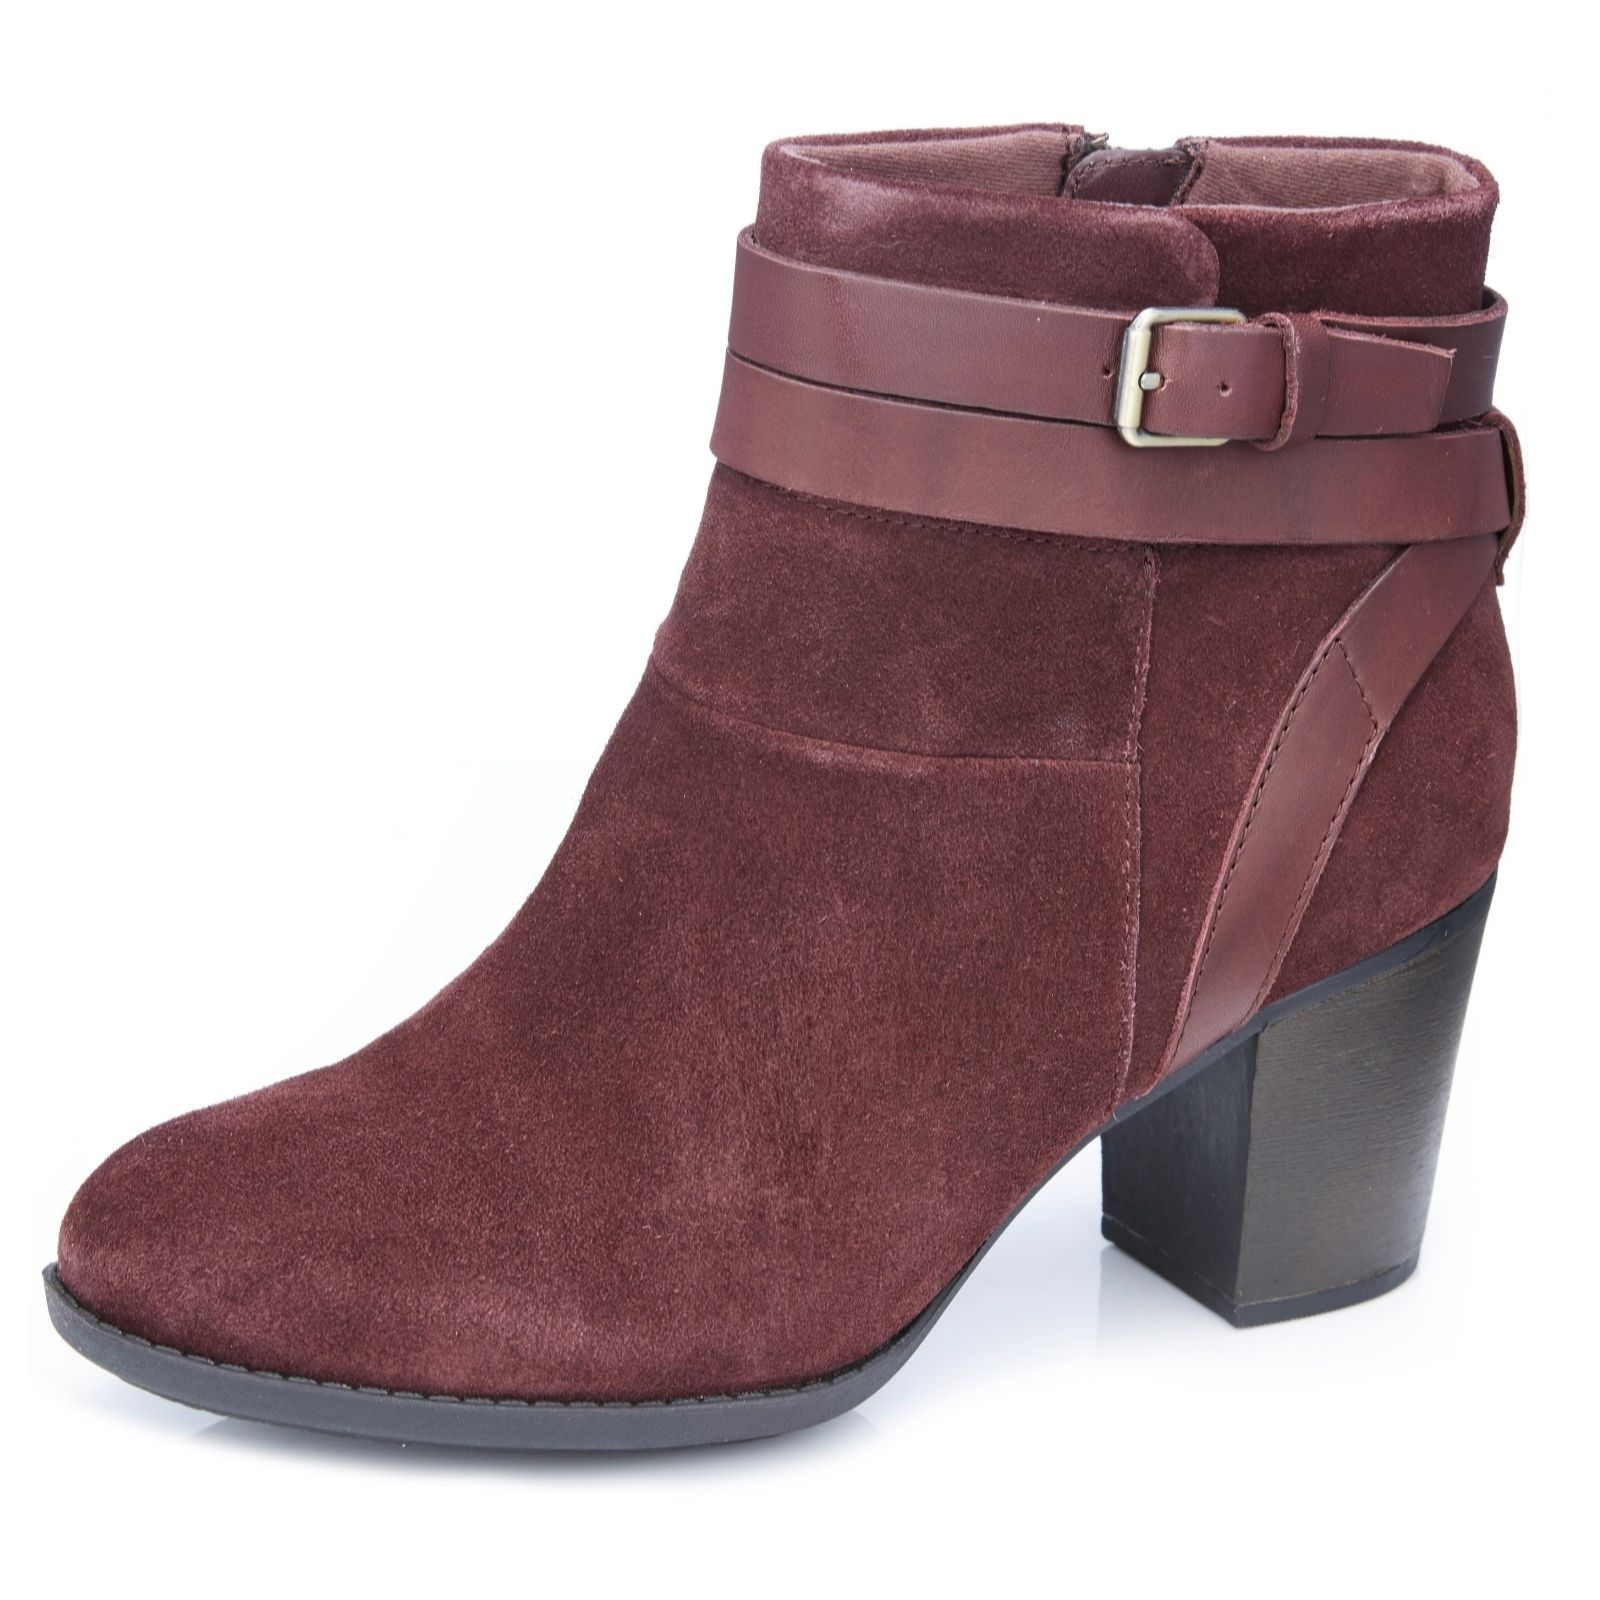 a0cfba75c2c Clarks Enfield River Ankle Boot with Buckle Detail Standard Fit - QVC UK